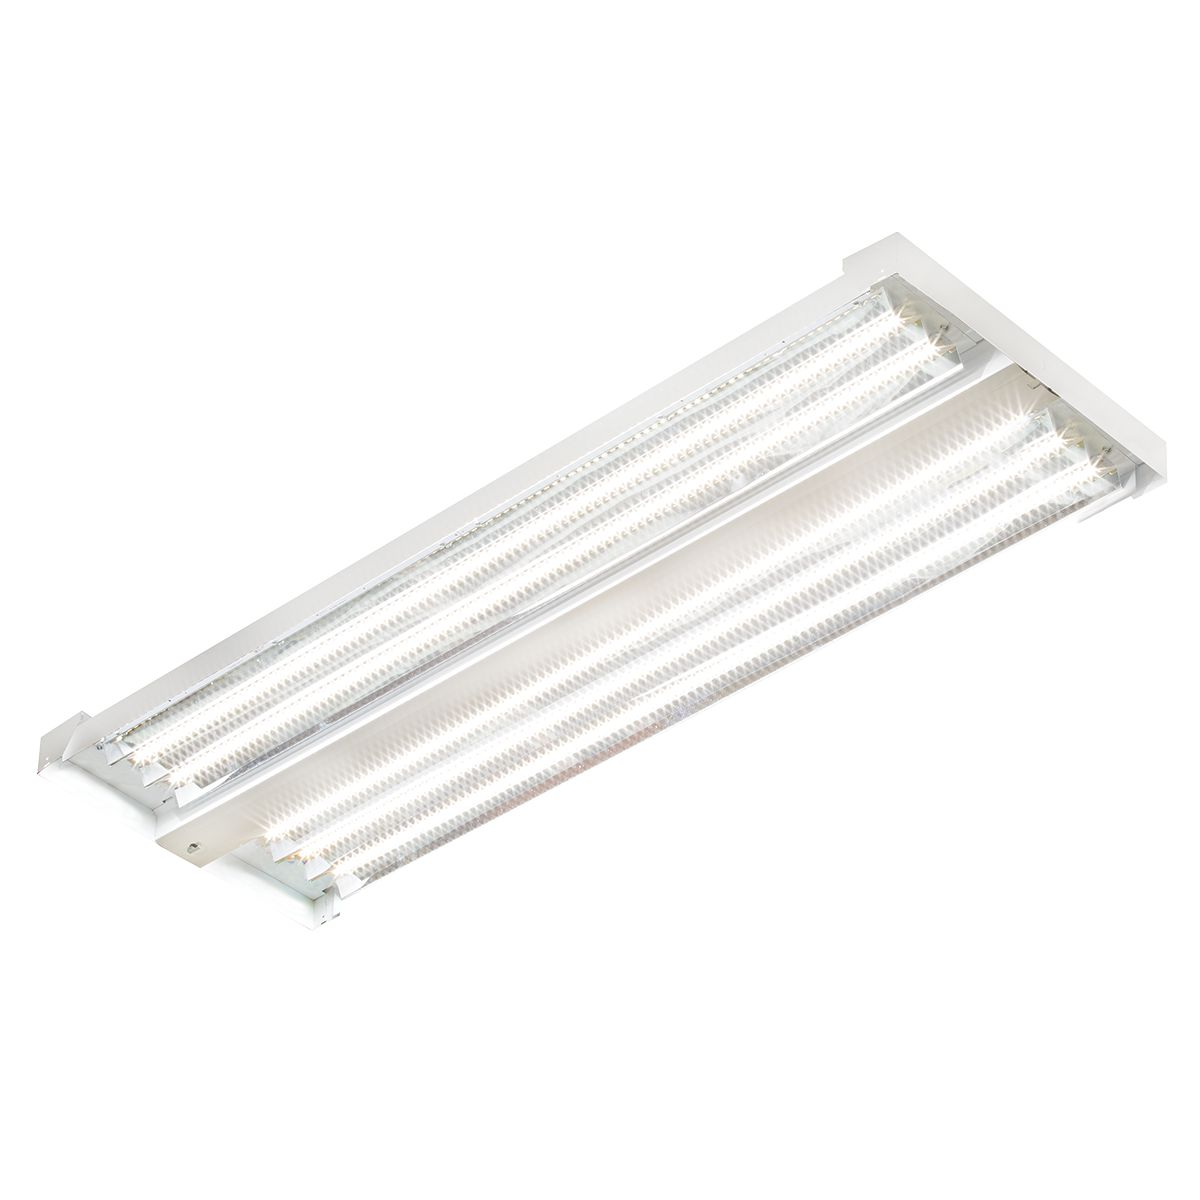 LED HBAY 4FT 4K 18685 lm WIDE DIM